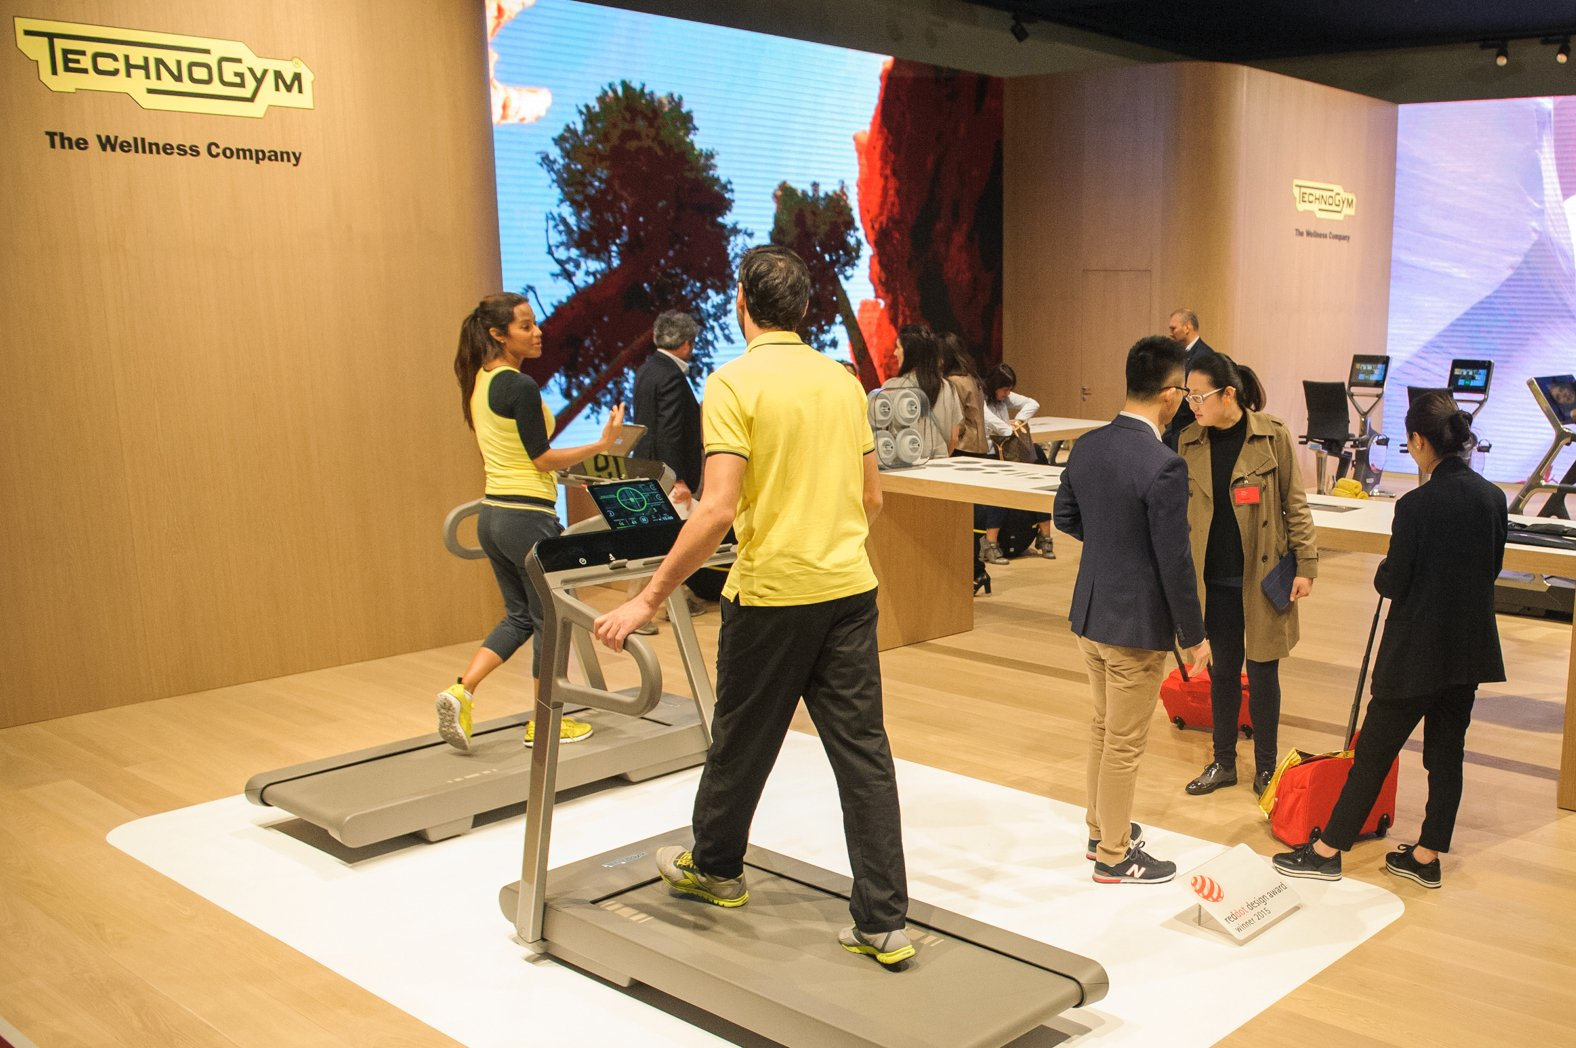 Technogym presents MYRUN TECHNOGYM at Salone del Mobile 2015, the Milan home decoration fair